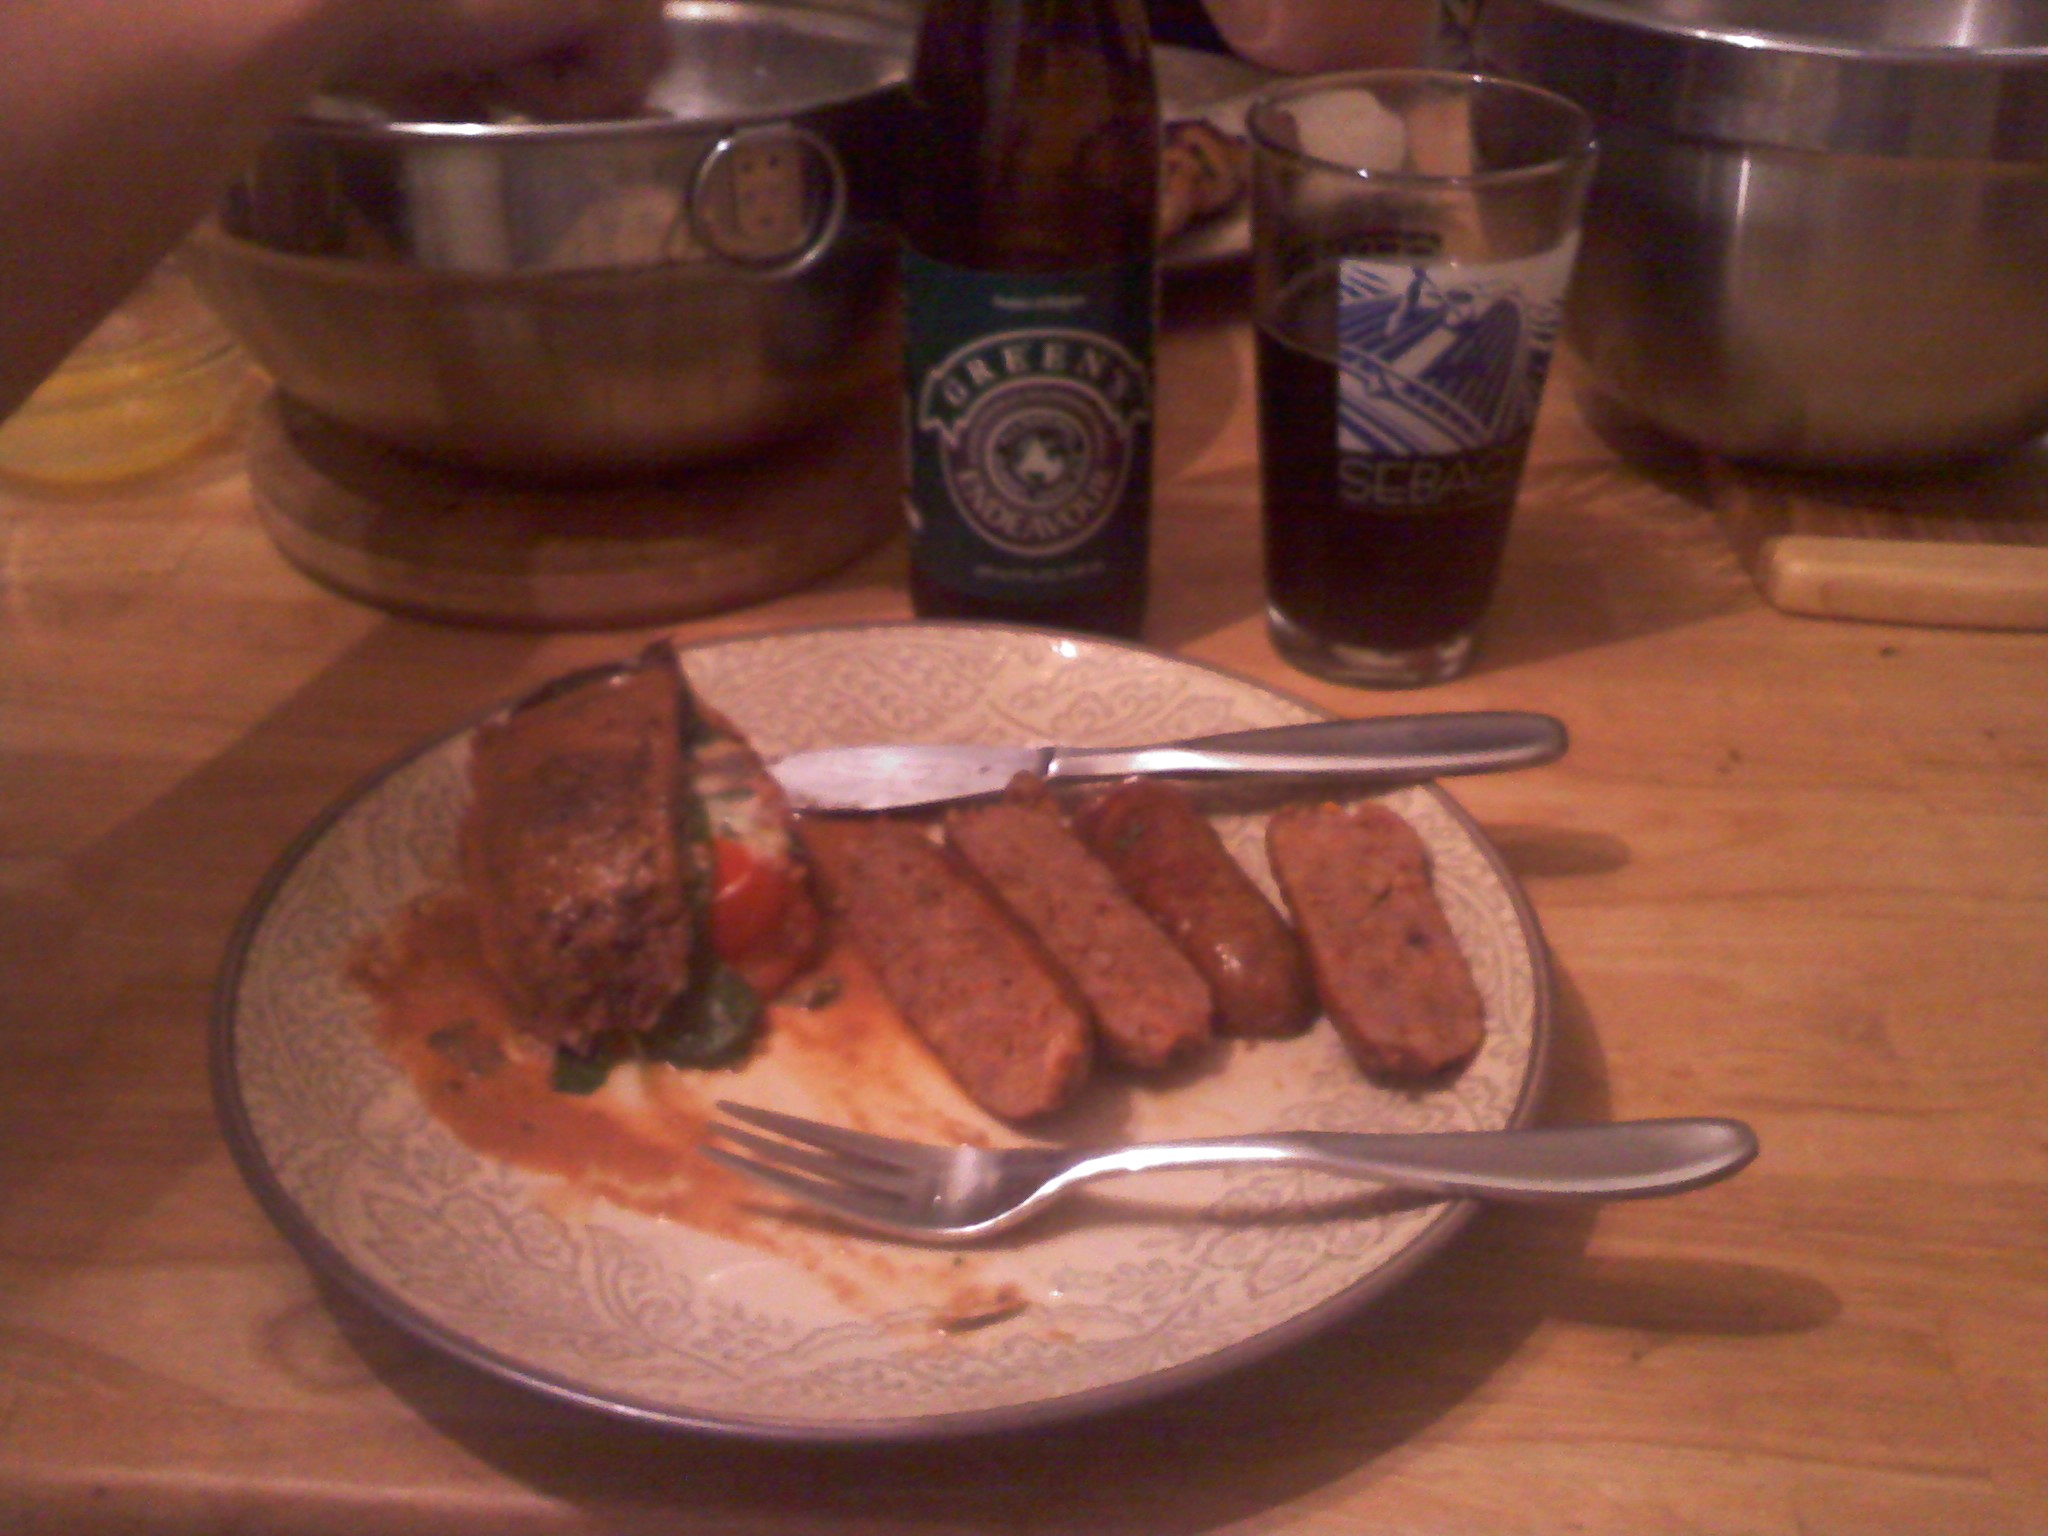 Portland, ME,PJD's House :: Outdoor hardwood grilled dinne - Flank sreak with the works, hot sausage, and Maine Clams, and Green's GF beer